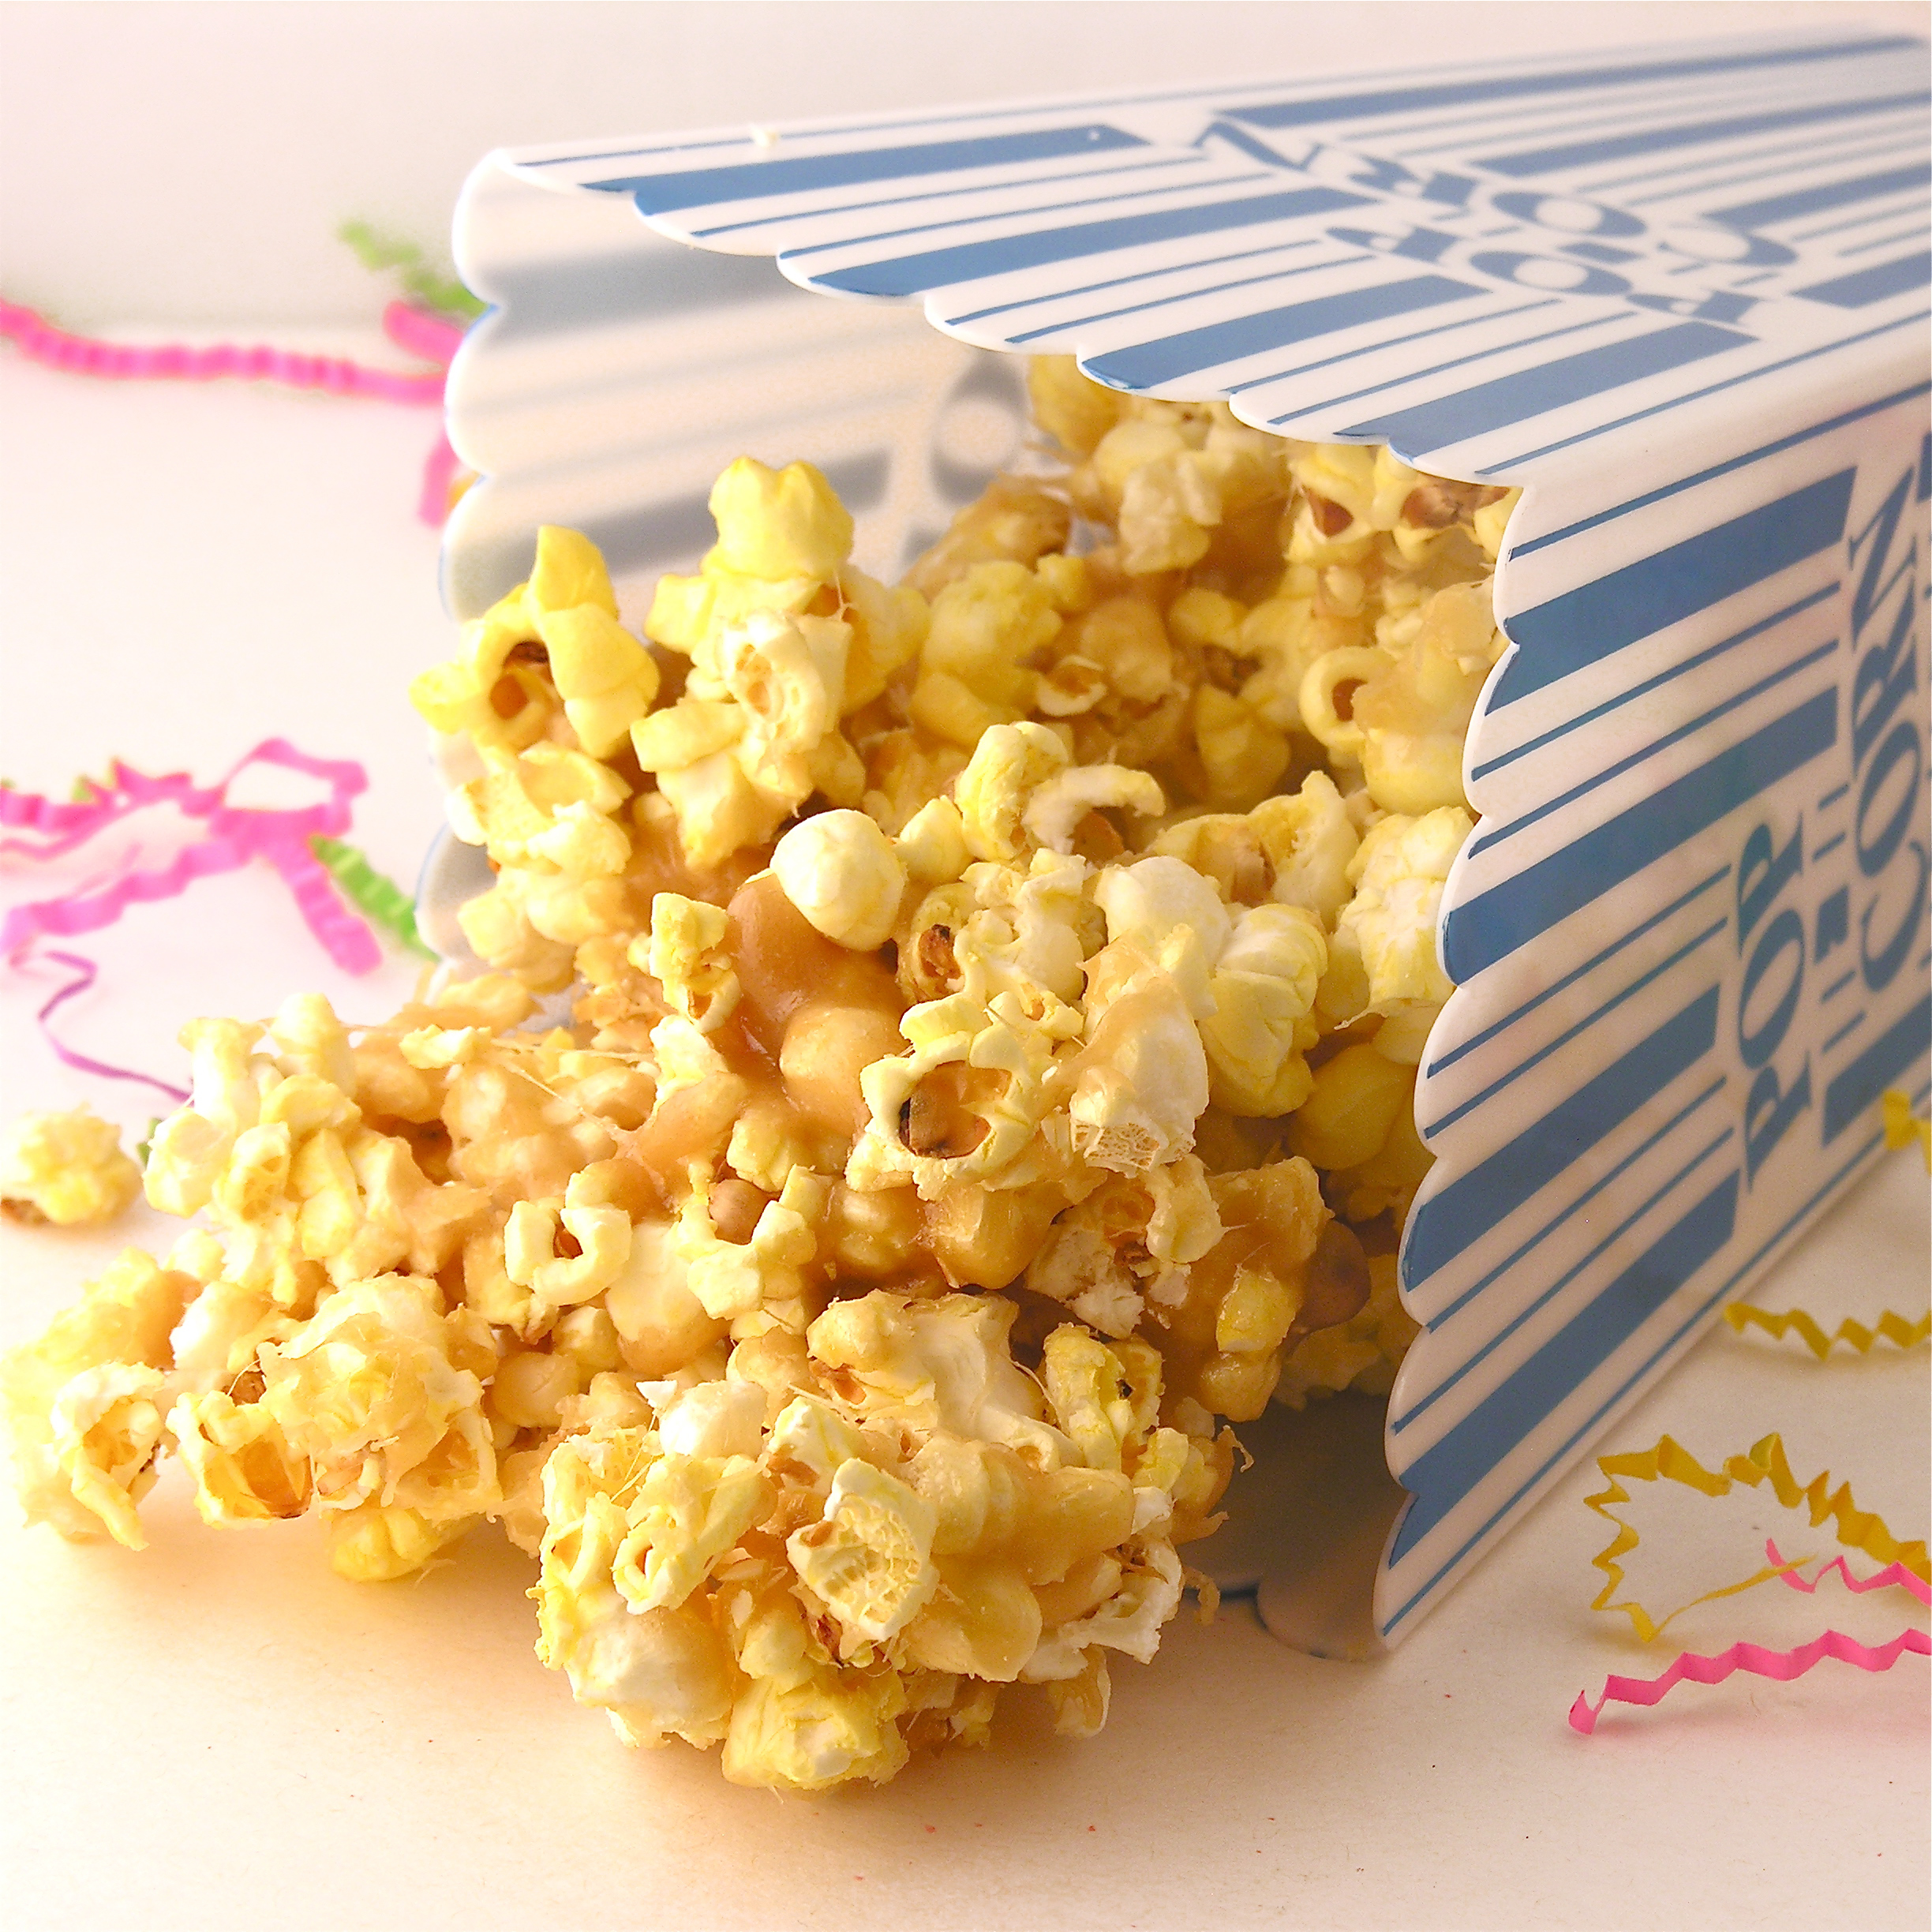 DIY Caramel Corn and other great gift ideas from Easybaked ...